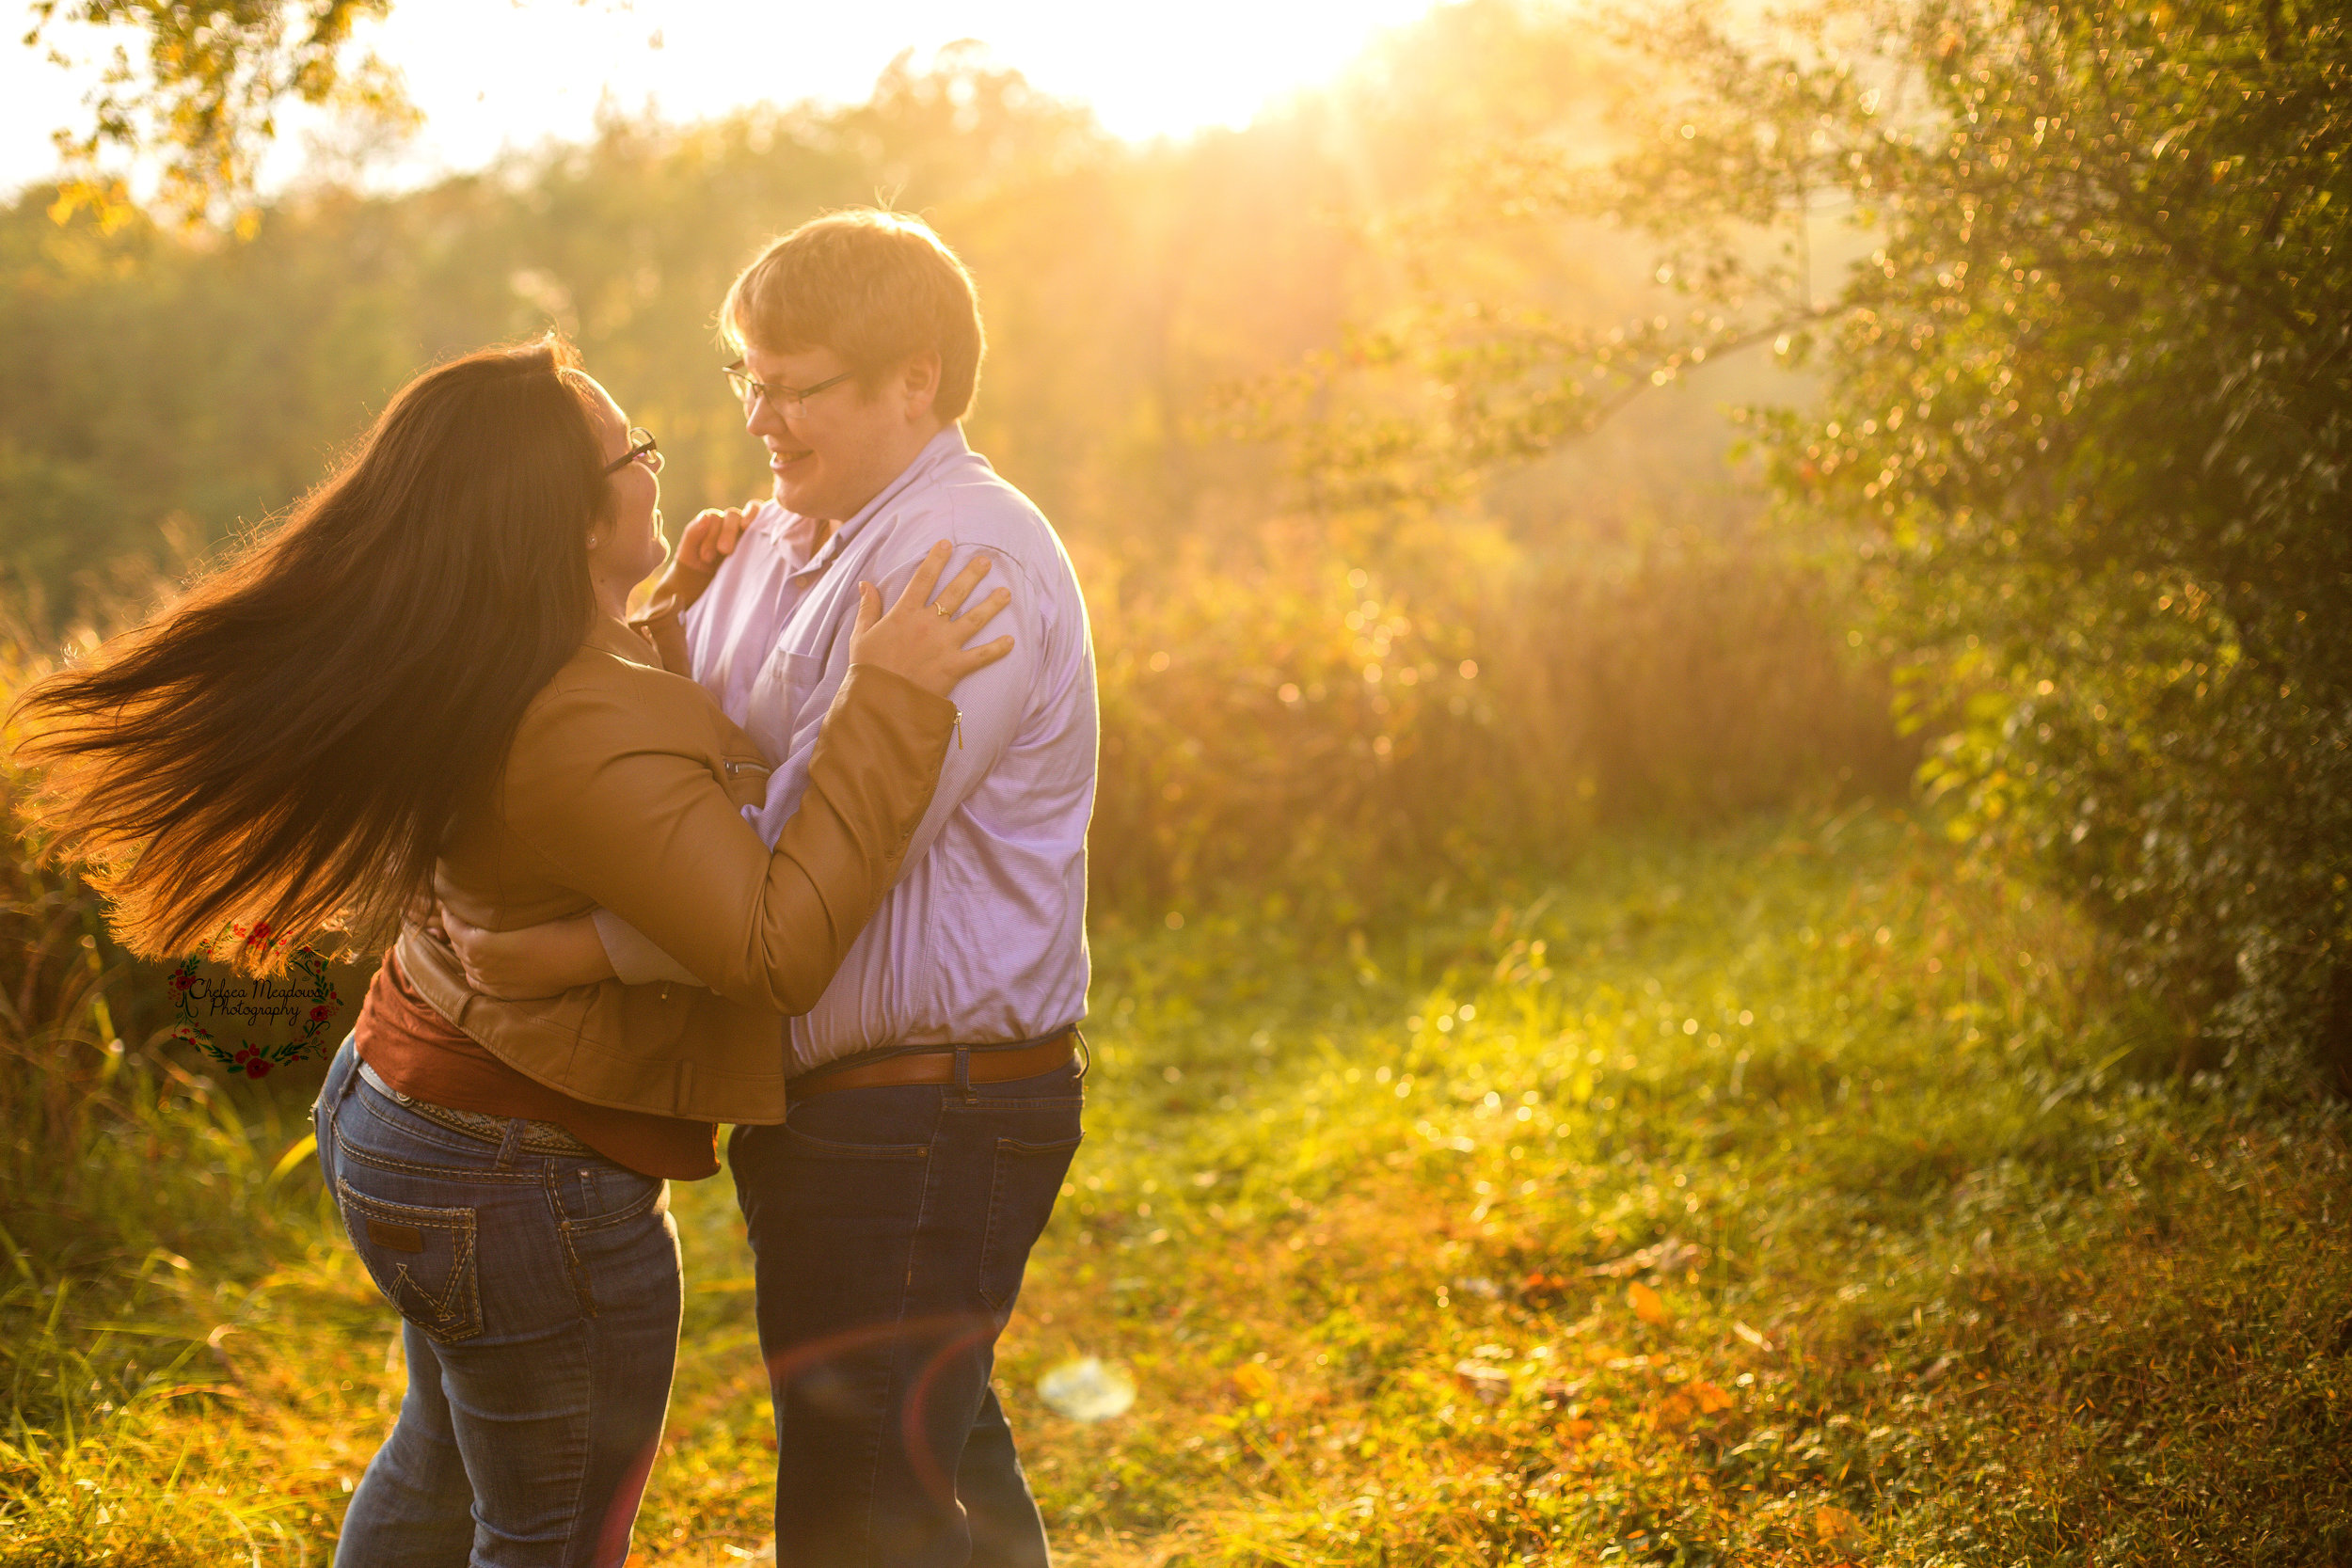 Ashley & Alex Engagement Session - Nashville Couple Photographer - Chelsea Meadows Photography (76).jpg